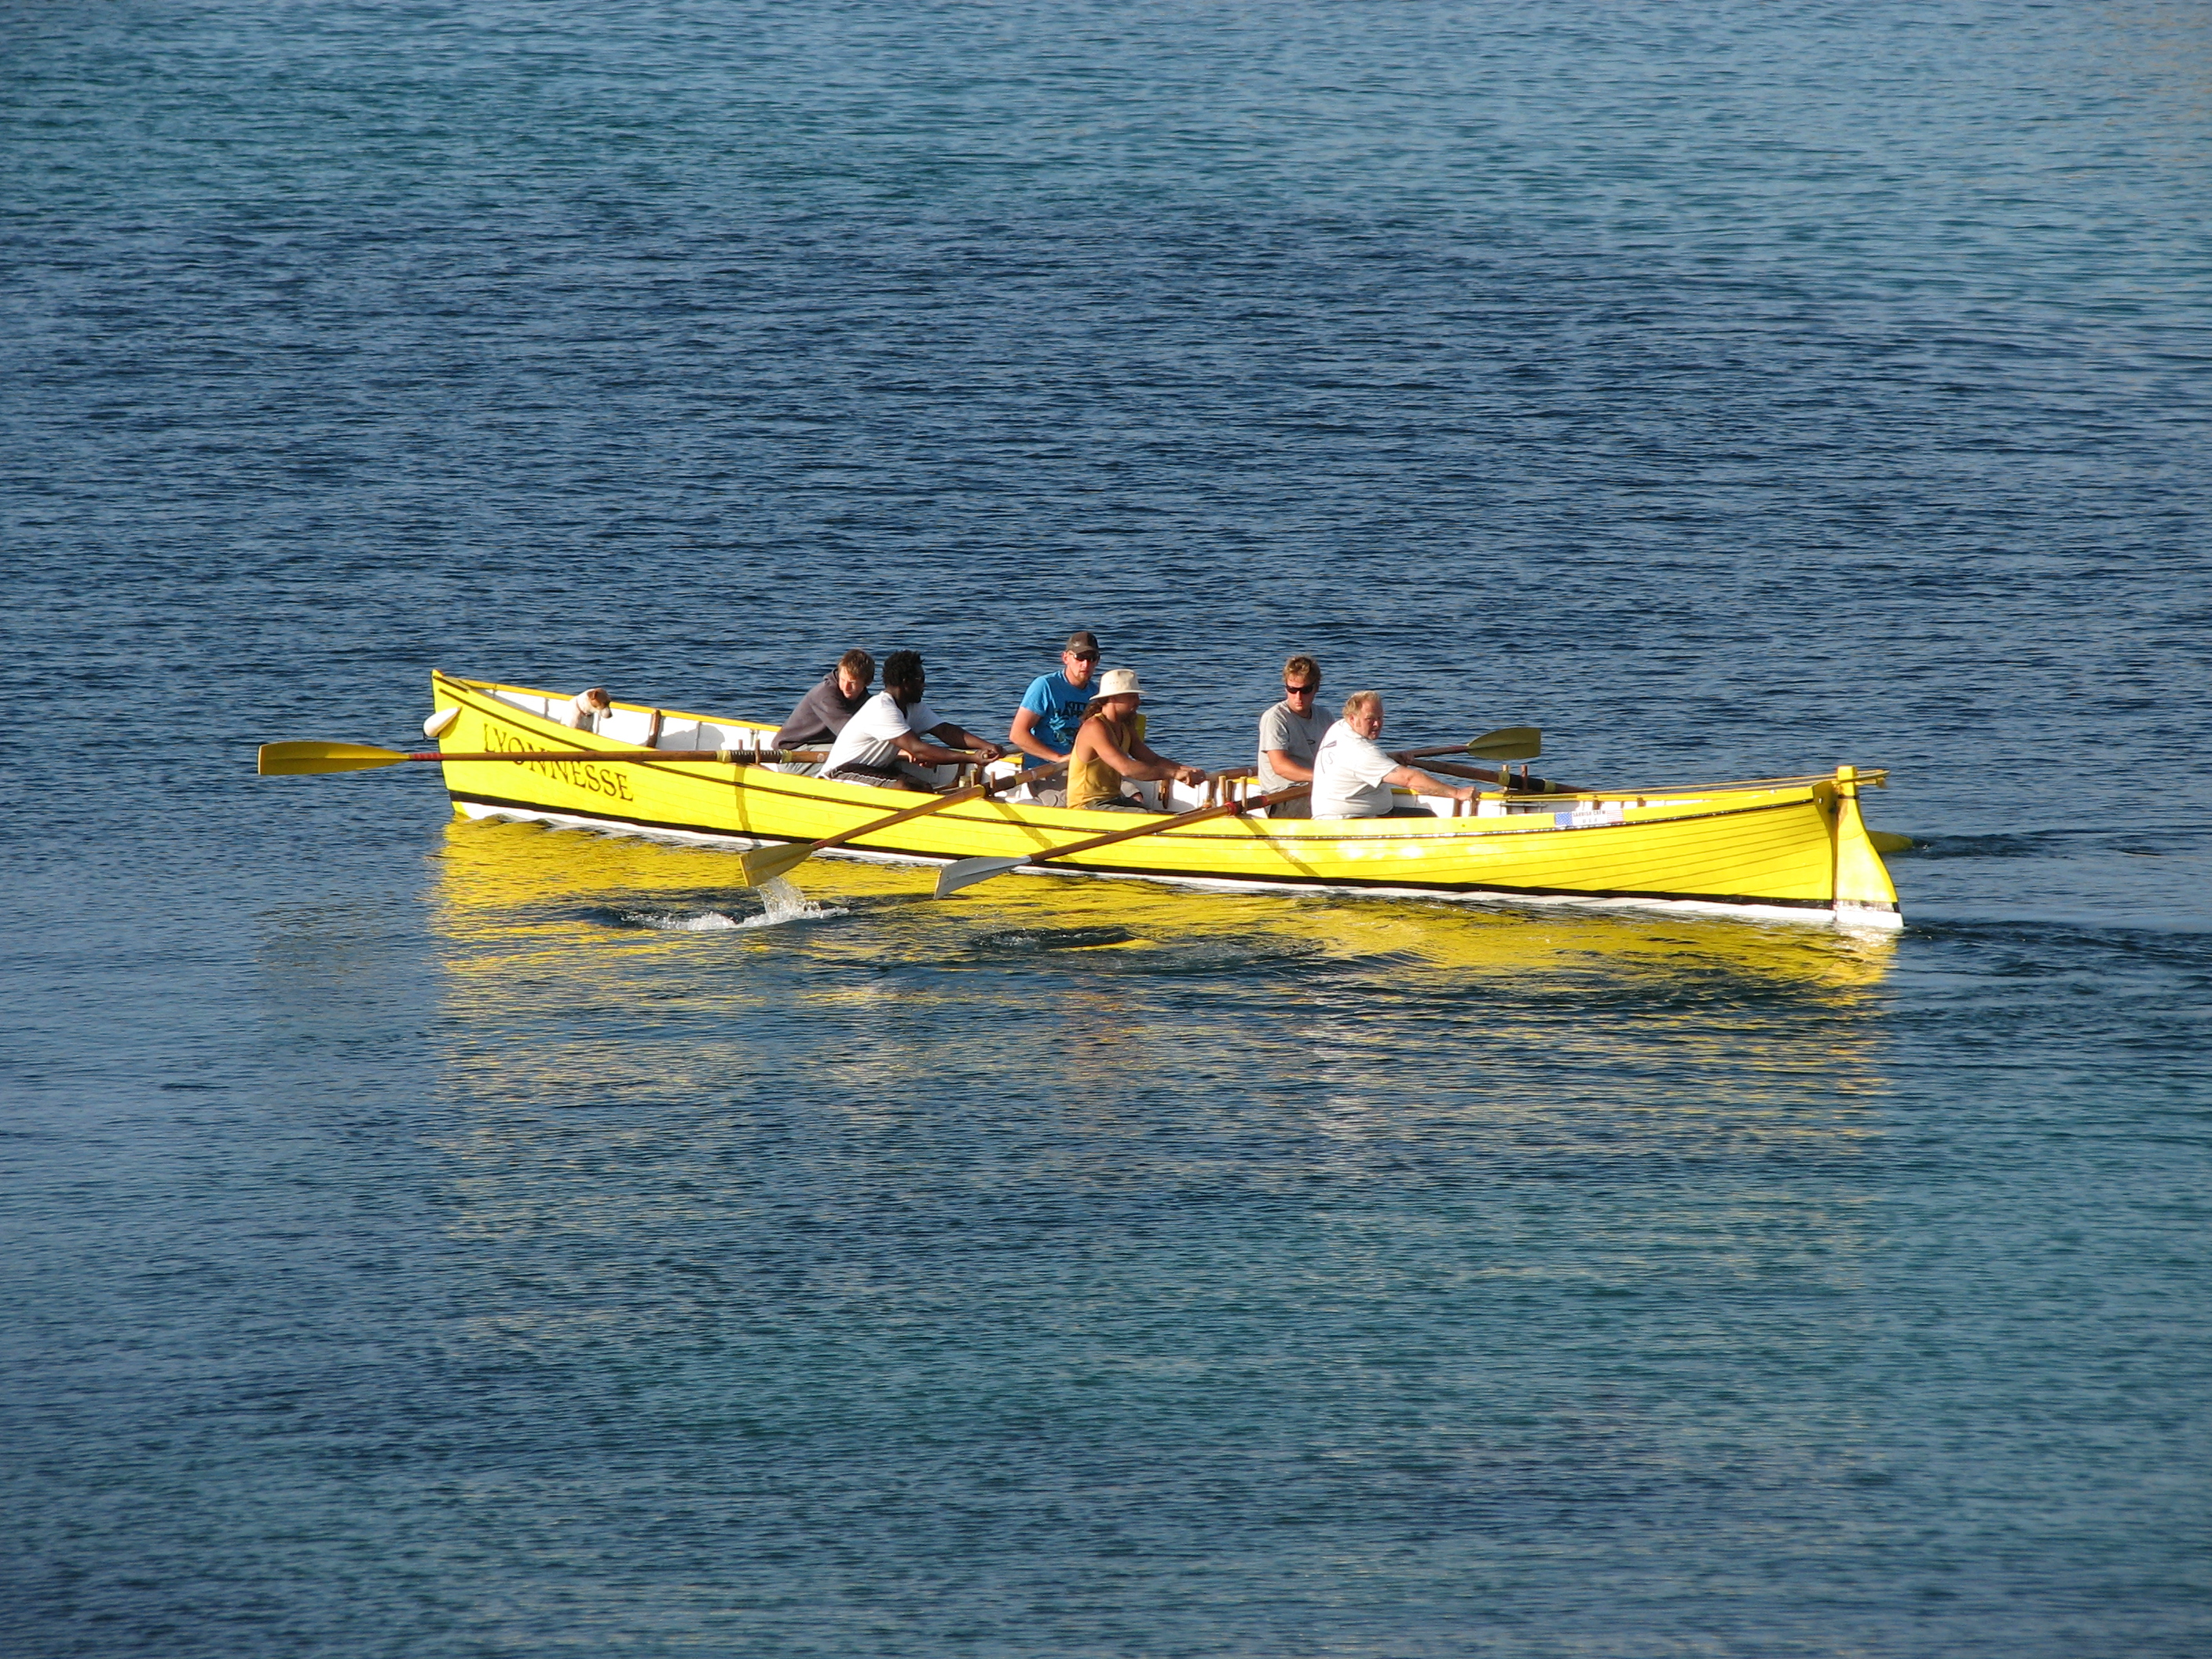 Traditional Gig Race Boat